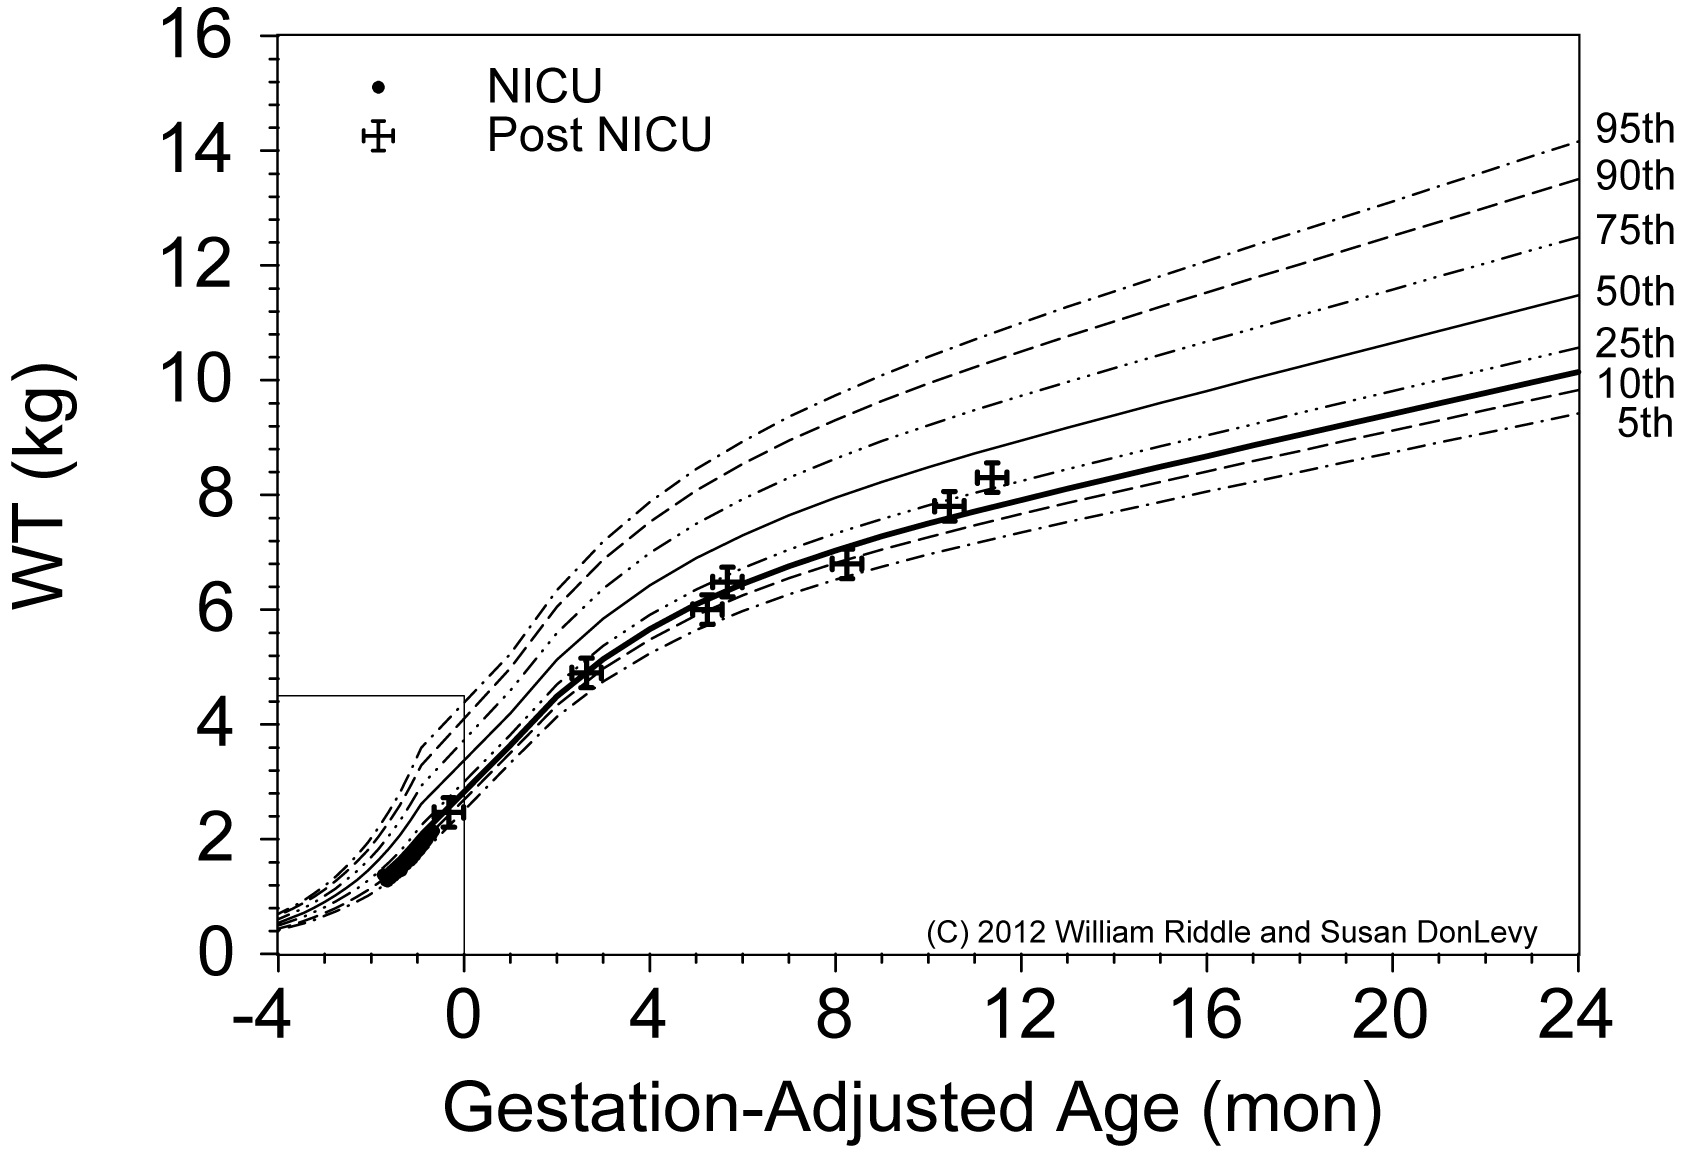 Full text herald scholarly open access figure 11 5th 10th 25th 50th 75th 90th and 95th percentiles of female combined intrauterine who growth curves values for a female infant with a birth nvjuhfo Image collections